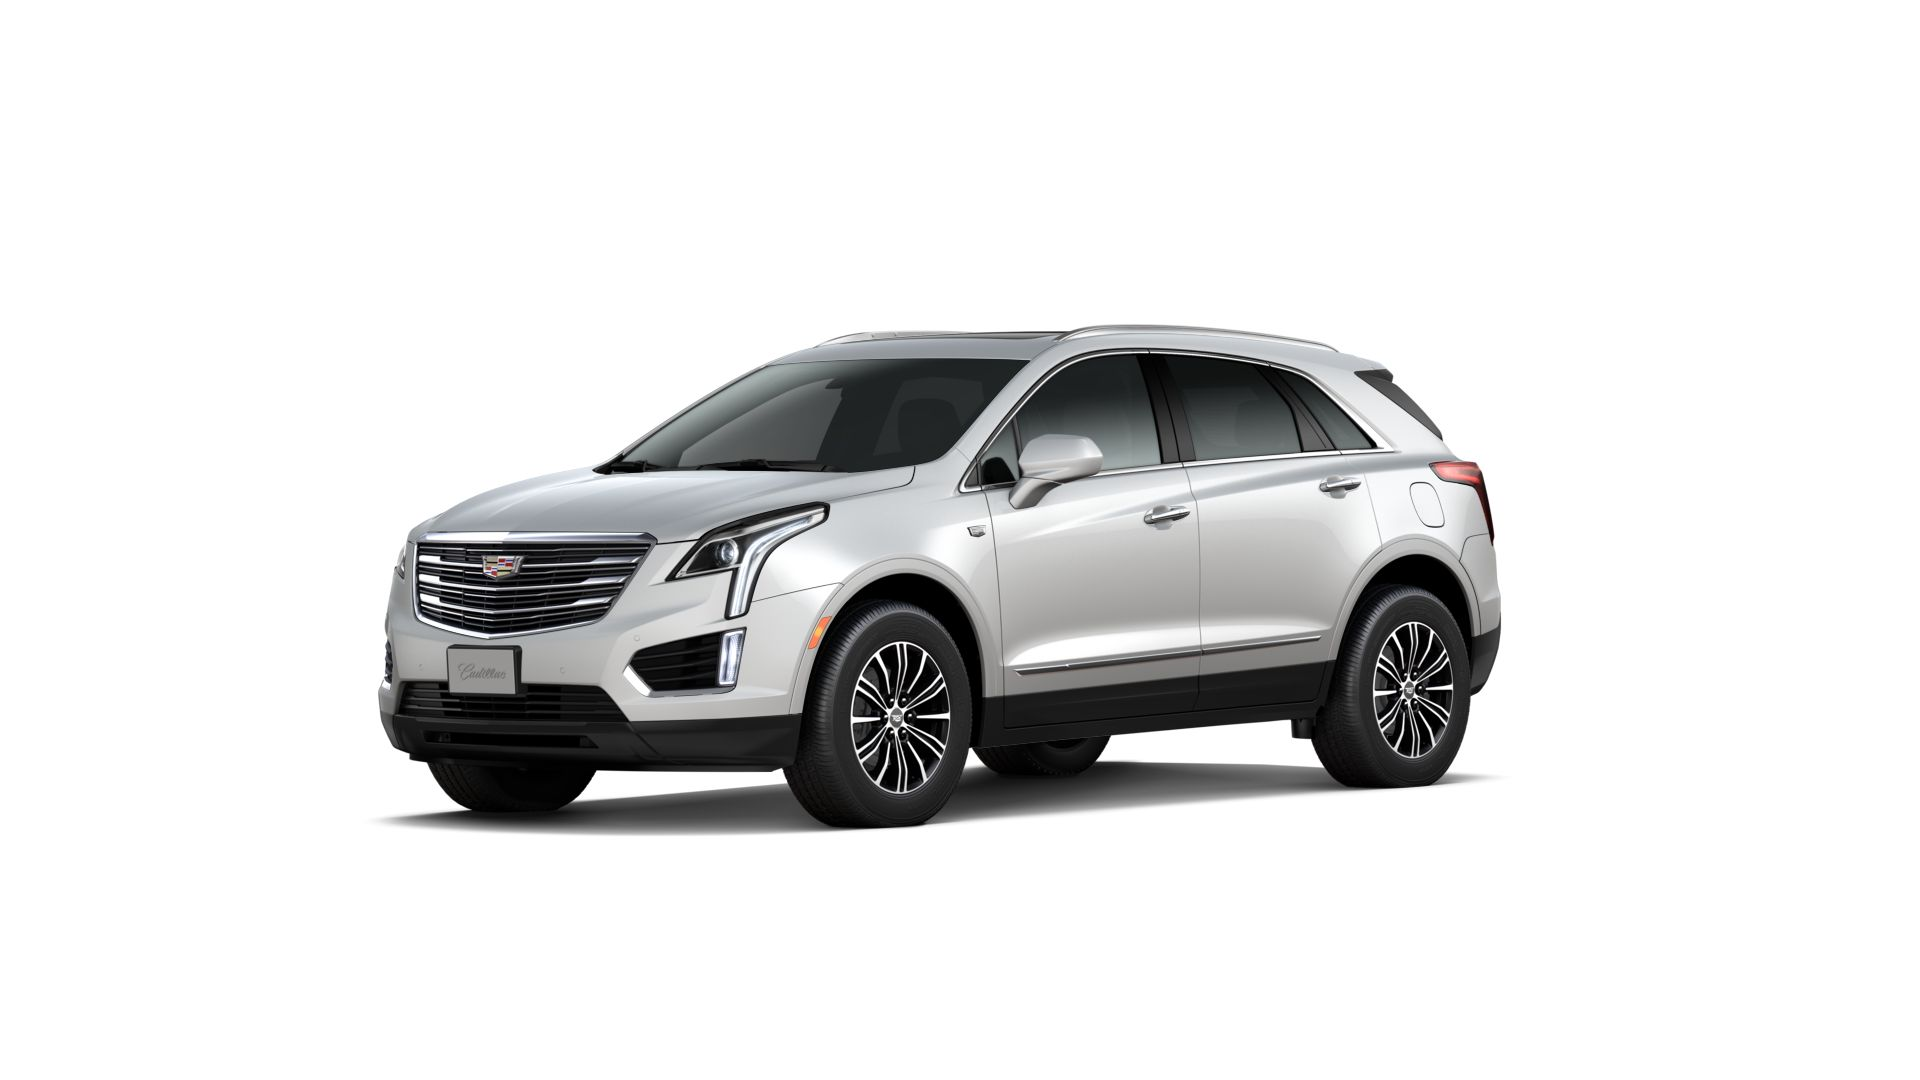 New 2019 Cadillac XT5 3.6L Luxury FWD Front Wheel Drive SUV